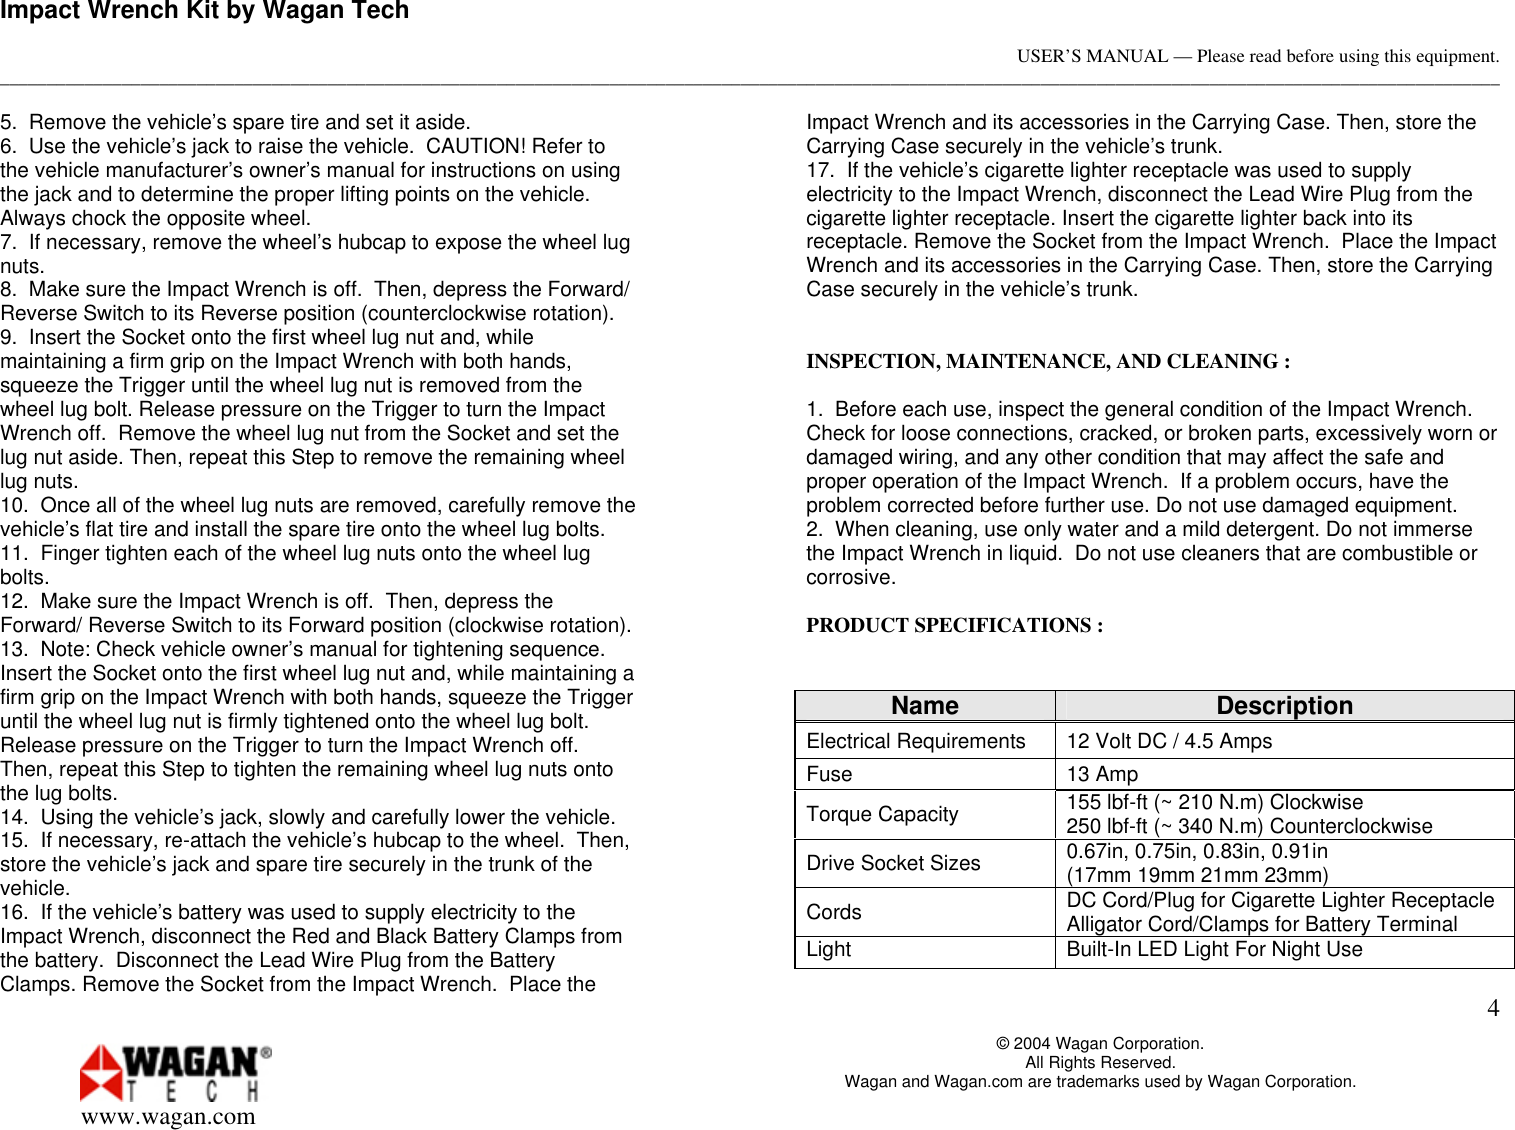 Page 4 of 4 - Wagan Wagan-2257-Users-Manual- Your 350 Watt Power Inverter Converts 12-volt Vehicle Battery Into 115 Volts Of AC  Wagan-2257-users-manual